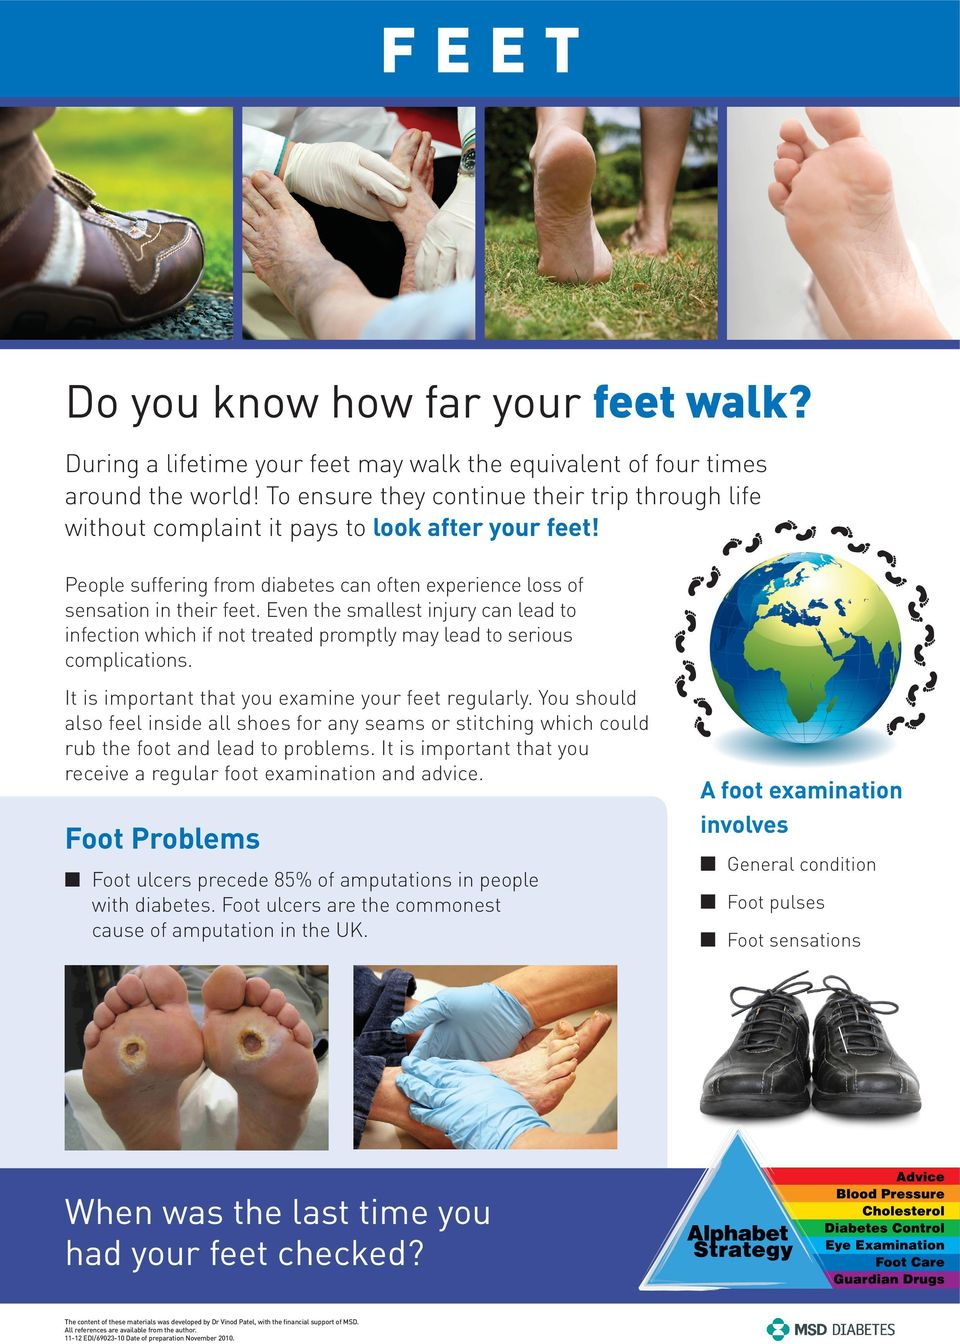 Even the smallest injury can lead to infection which if not treated promptly may lead to serious complications. It is important that you examine your feet regularly.